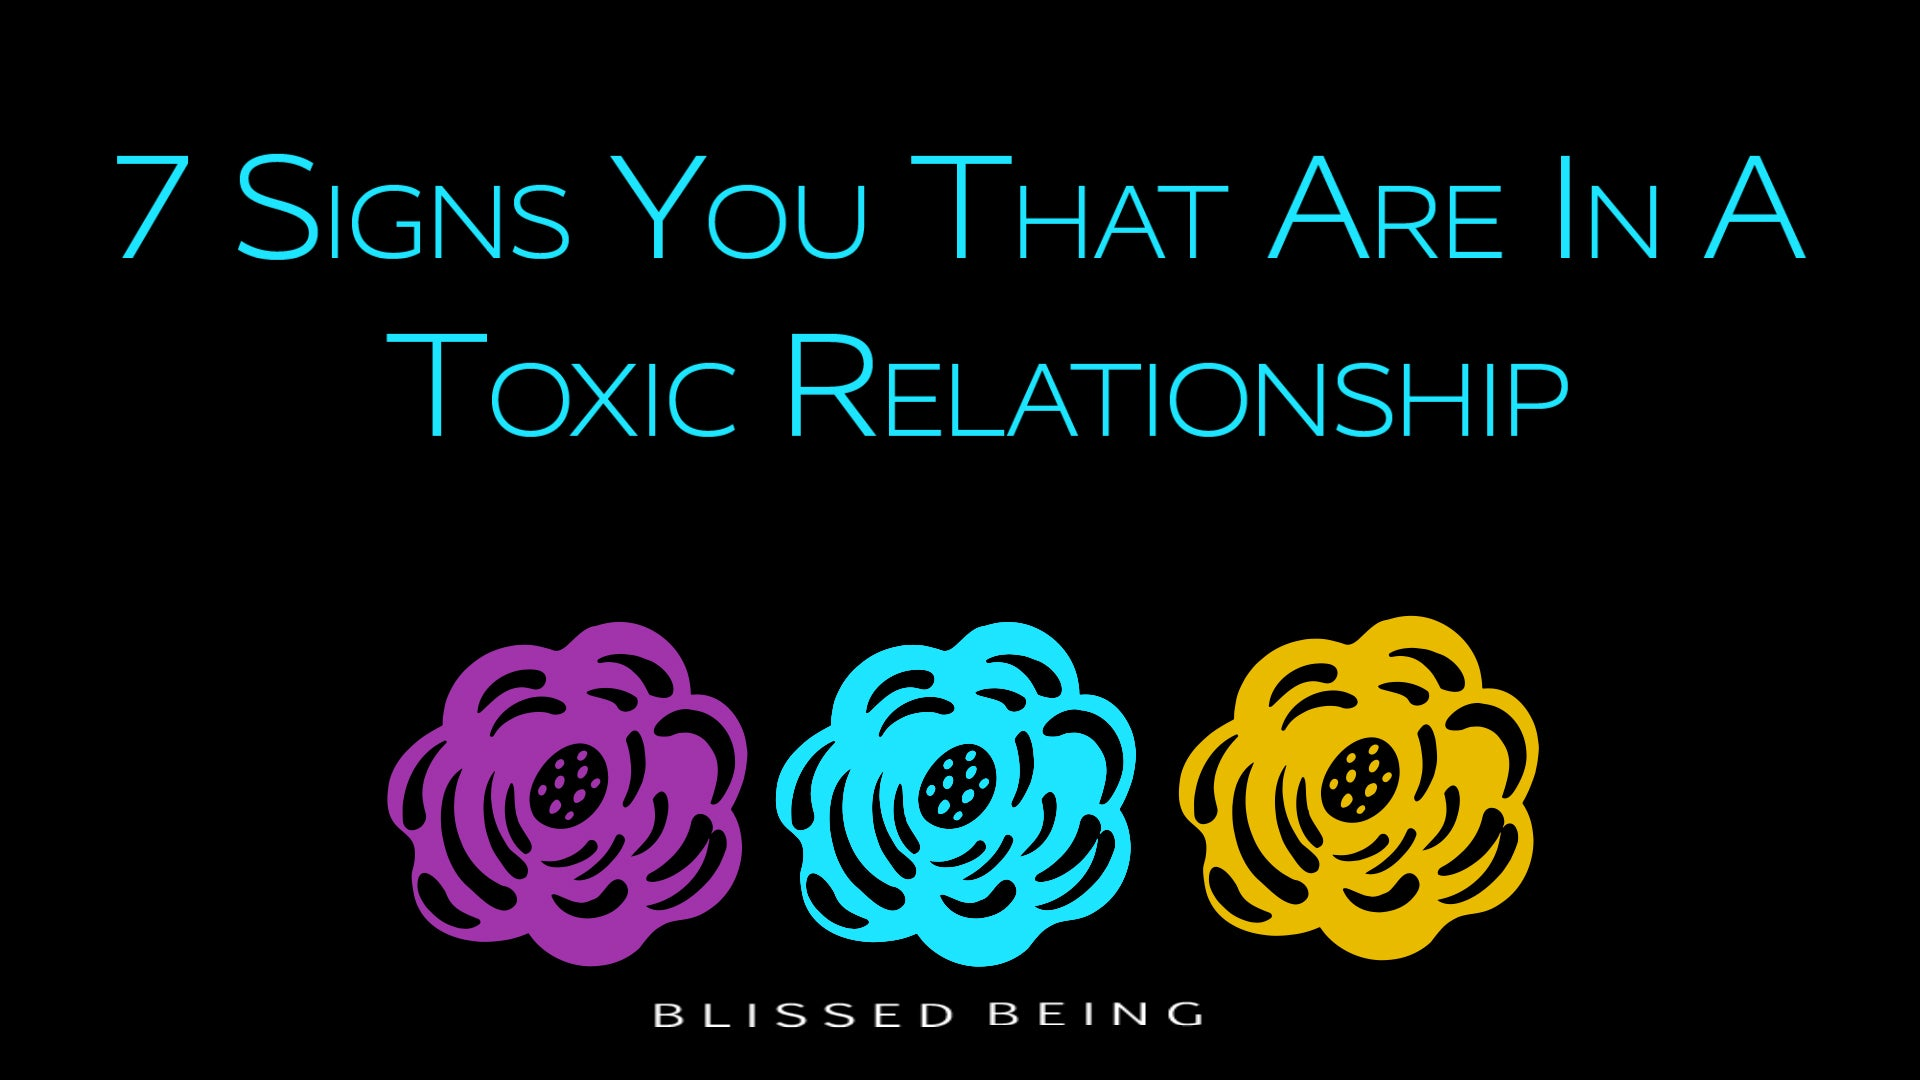 7 Signs That You Are In a Toxic Relationship